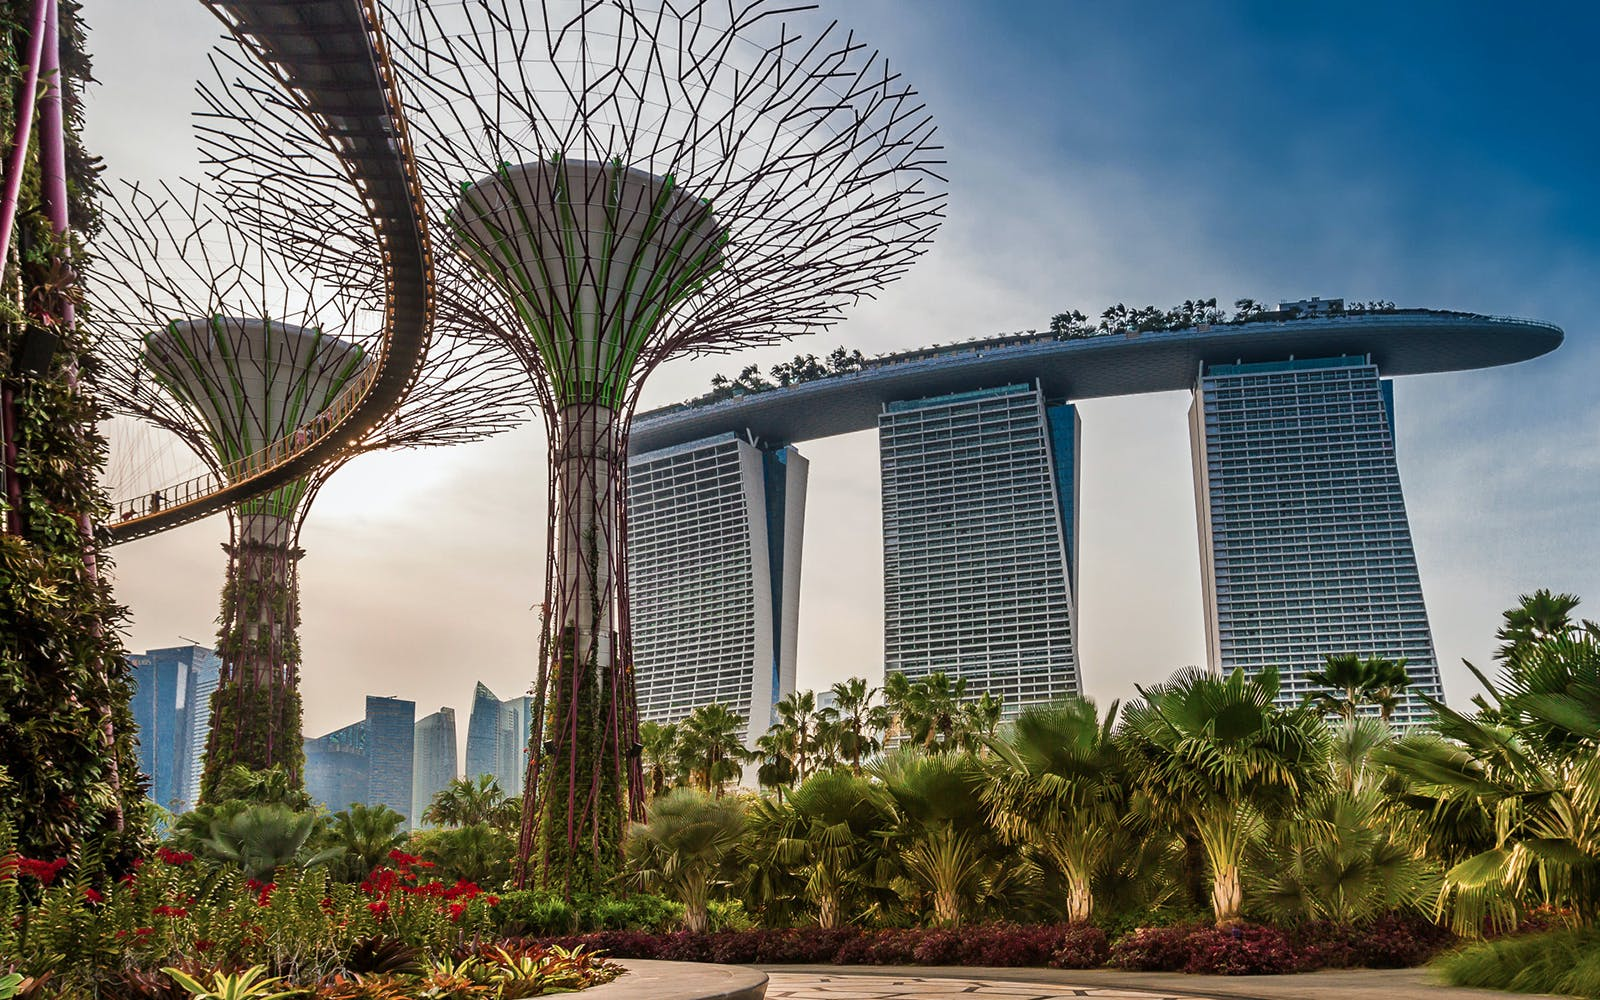 Super Saver Combo: Gardens by the Bay + Marina Bay Sands Observation Deck